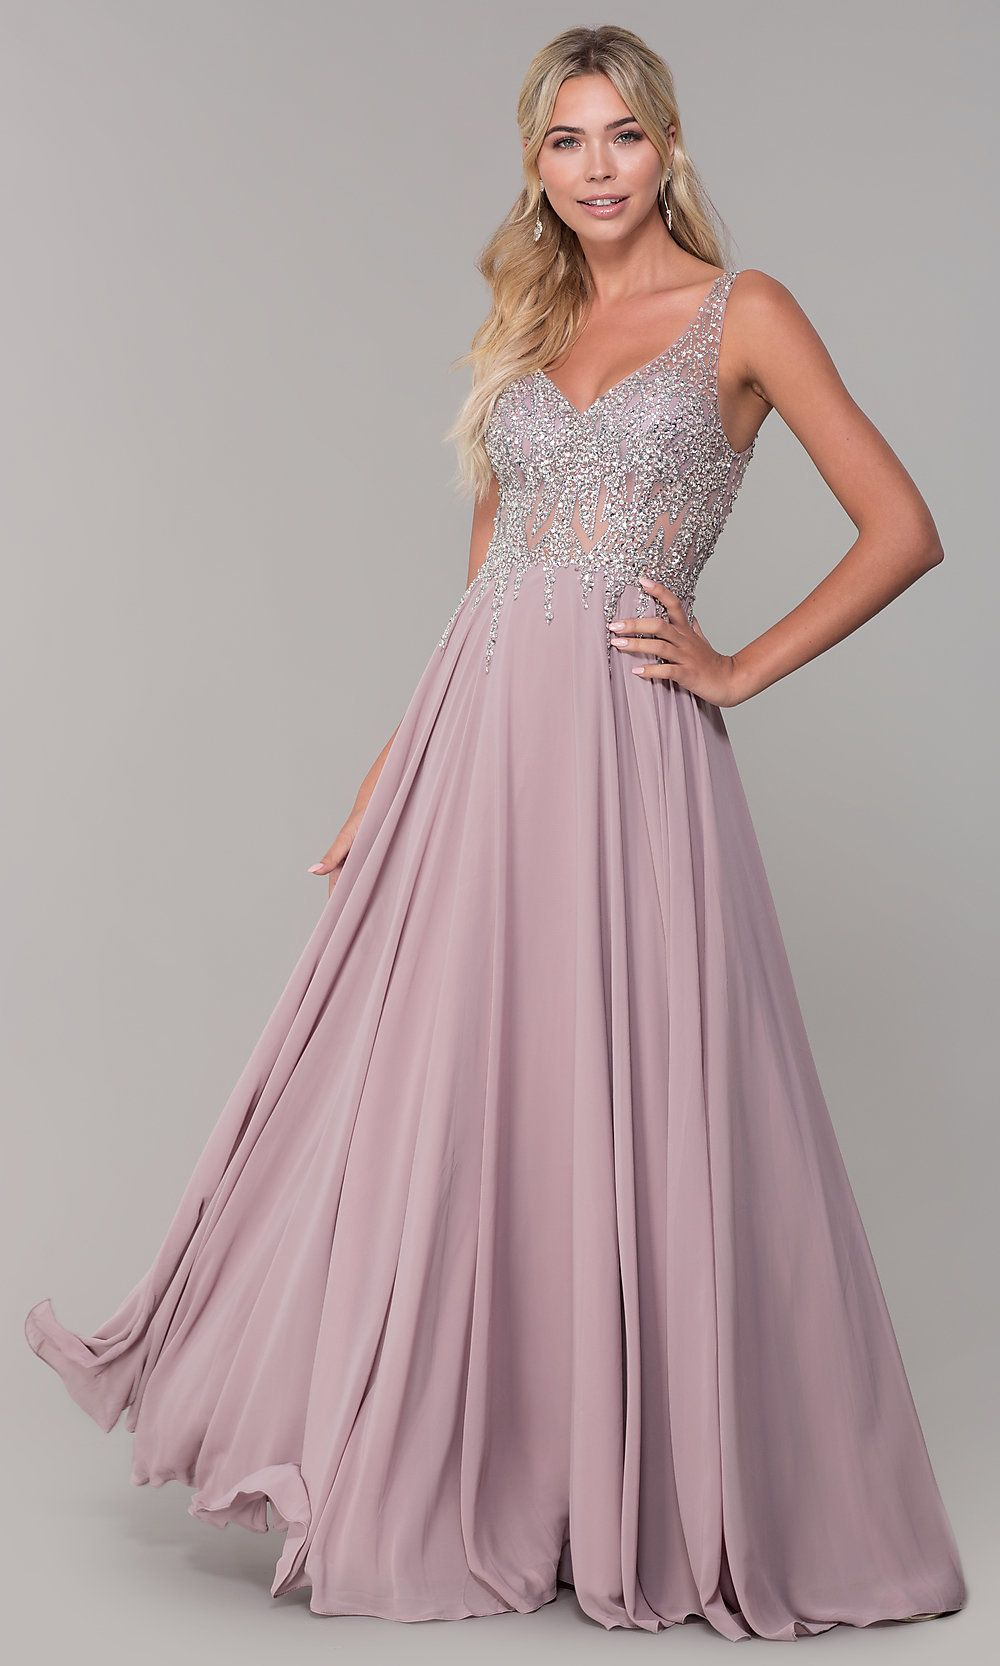 27e92ddcae3 V-Neck Long Sleeveless Prom Dress with Beaded Bodice in 2019